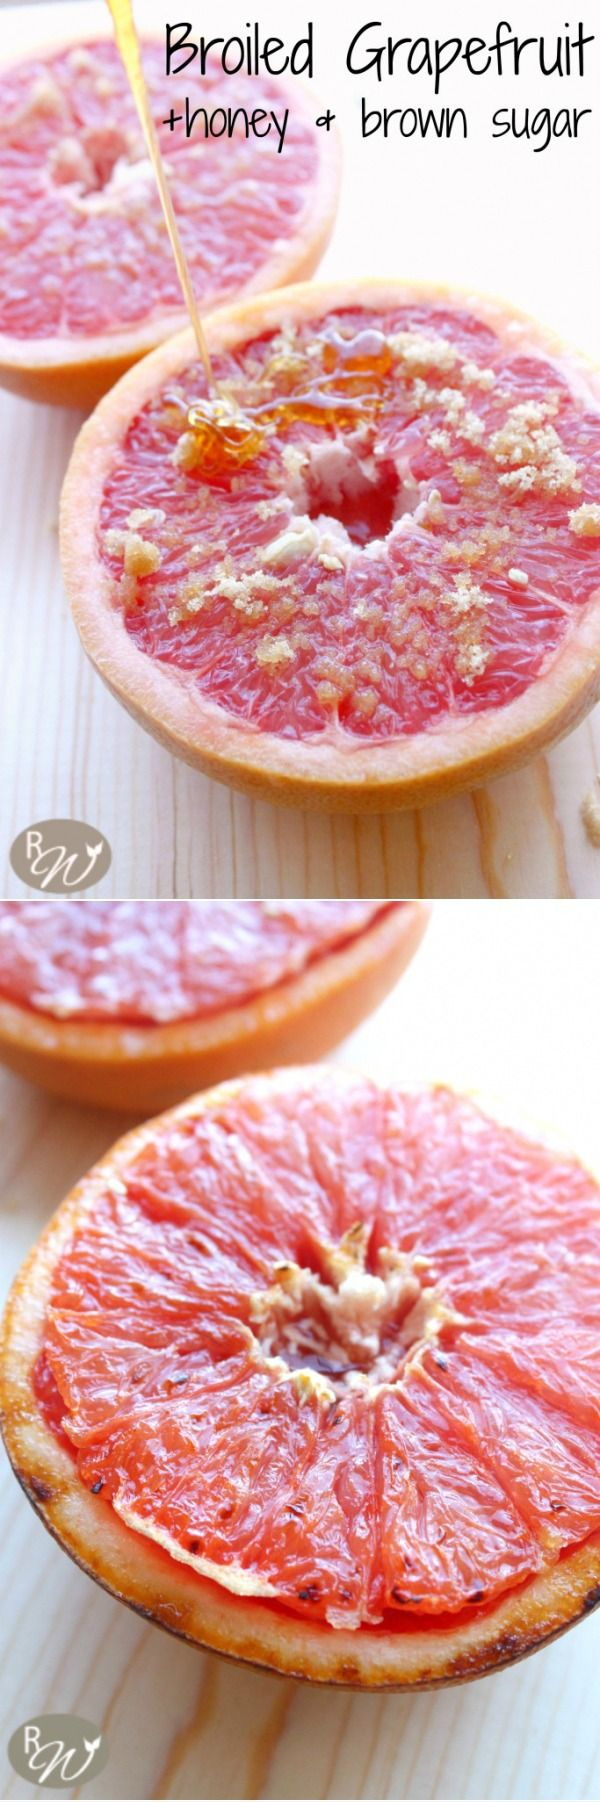 Change your grapefruit world with this recipe. Juicy grapefruit topped with brown sugar, cinnamon and honey and broiled to perfection. | therusticwillow.com #Healthy #Light